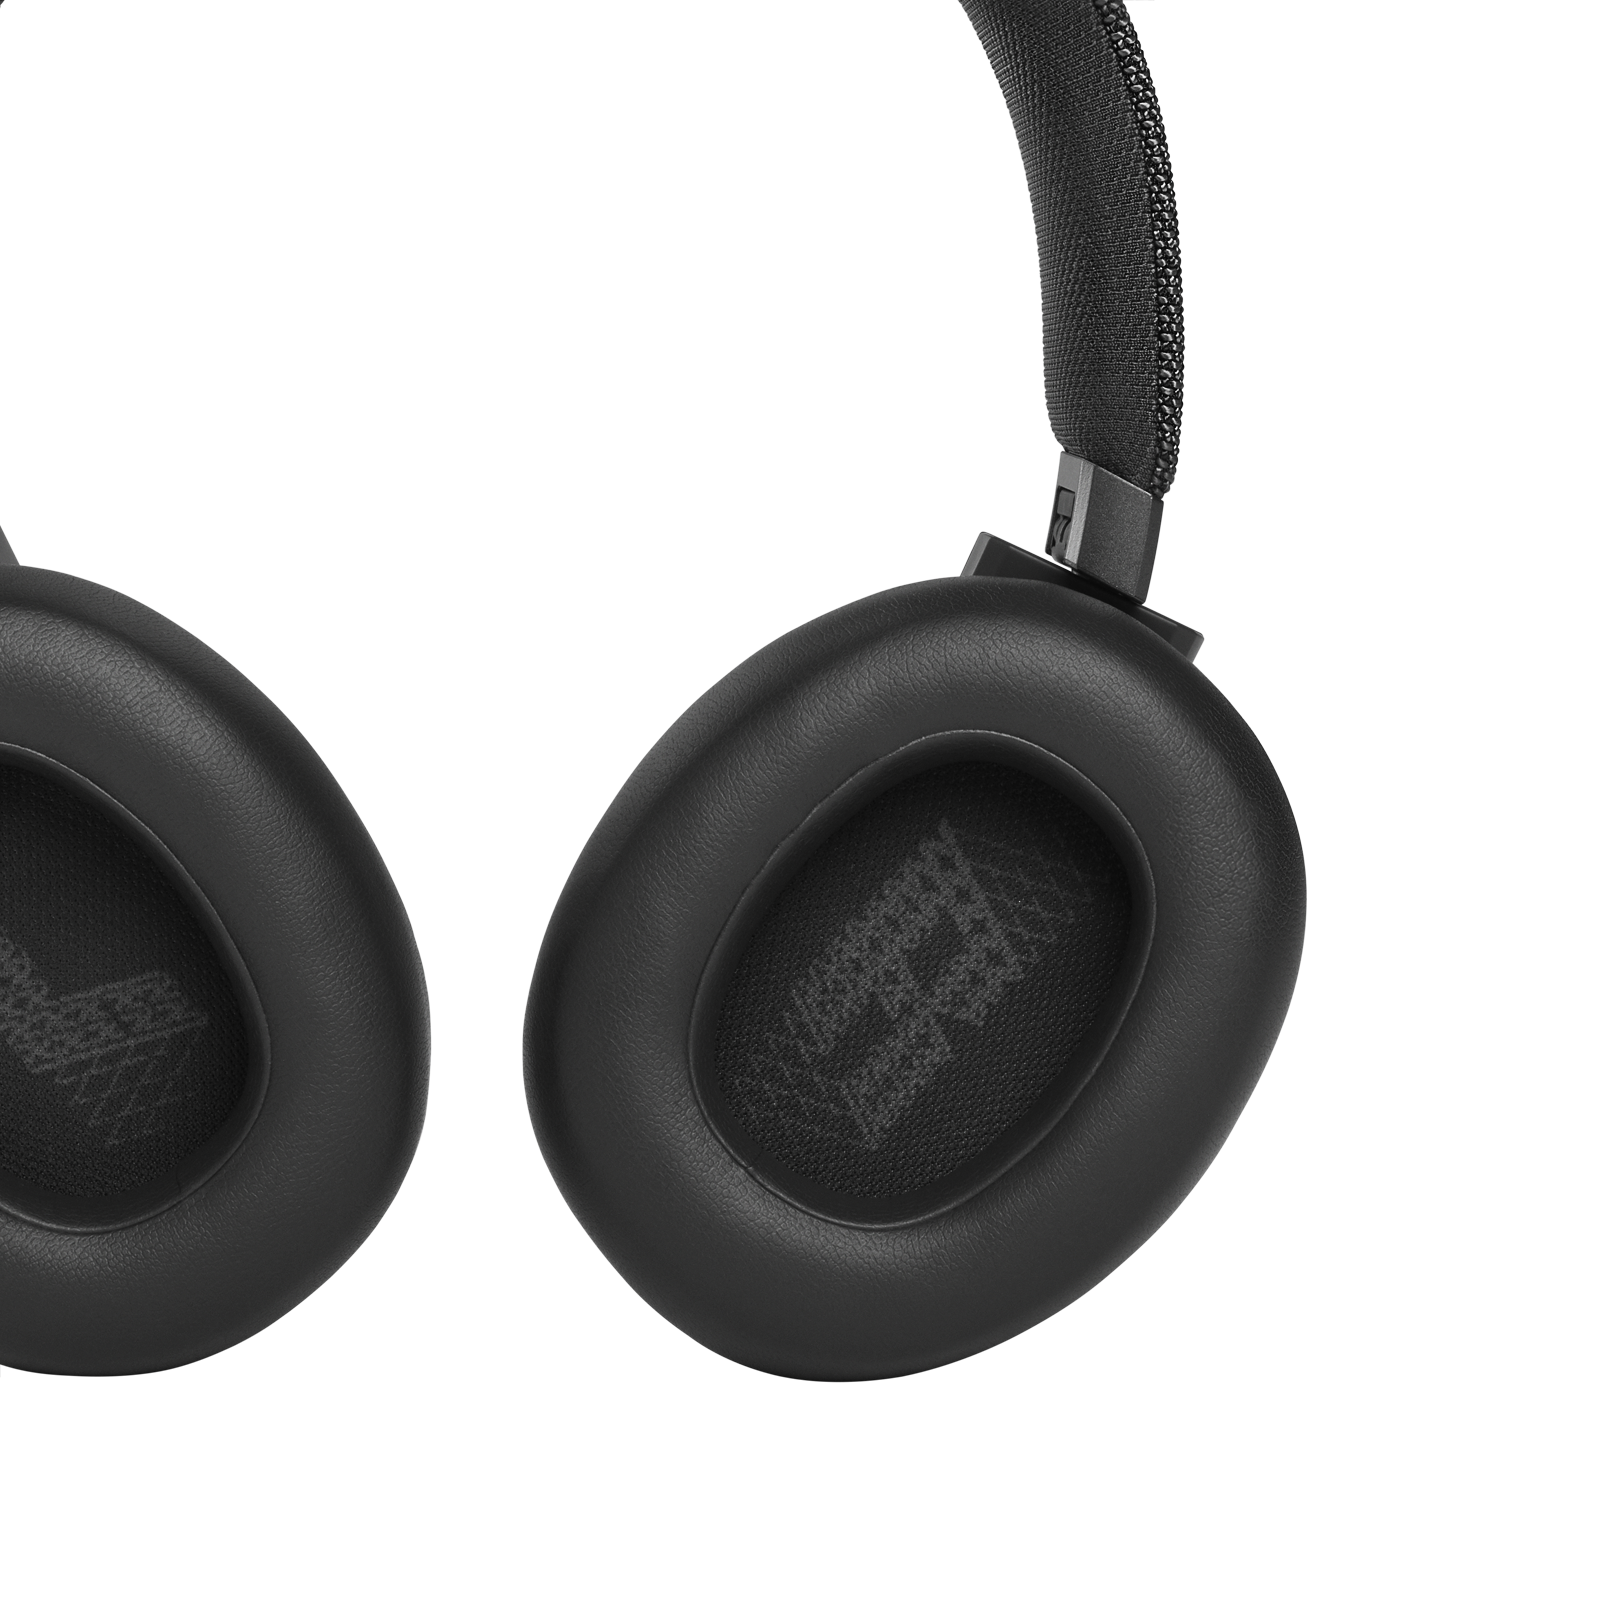 JBL Live 660NC - Black - WIRELESS OVER-EAR NC HEADPHONES - Detailshot 3